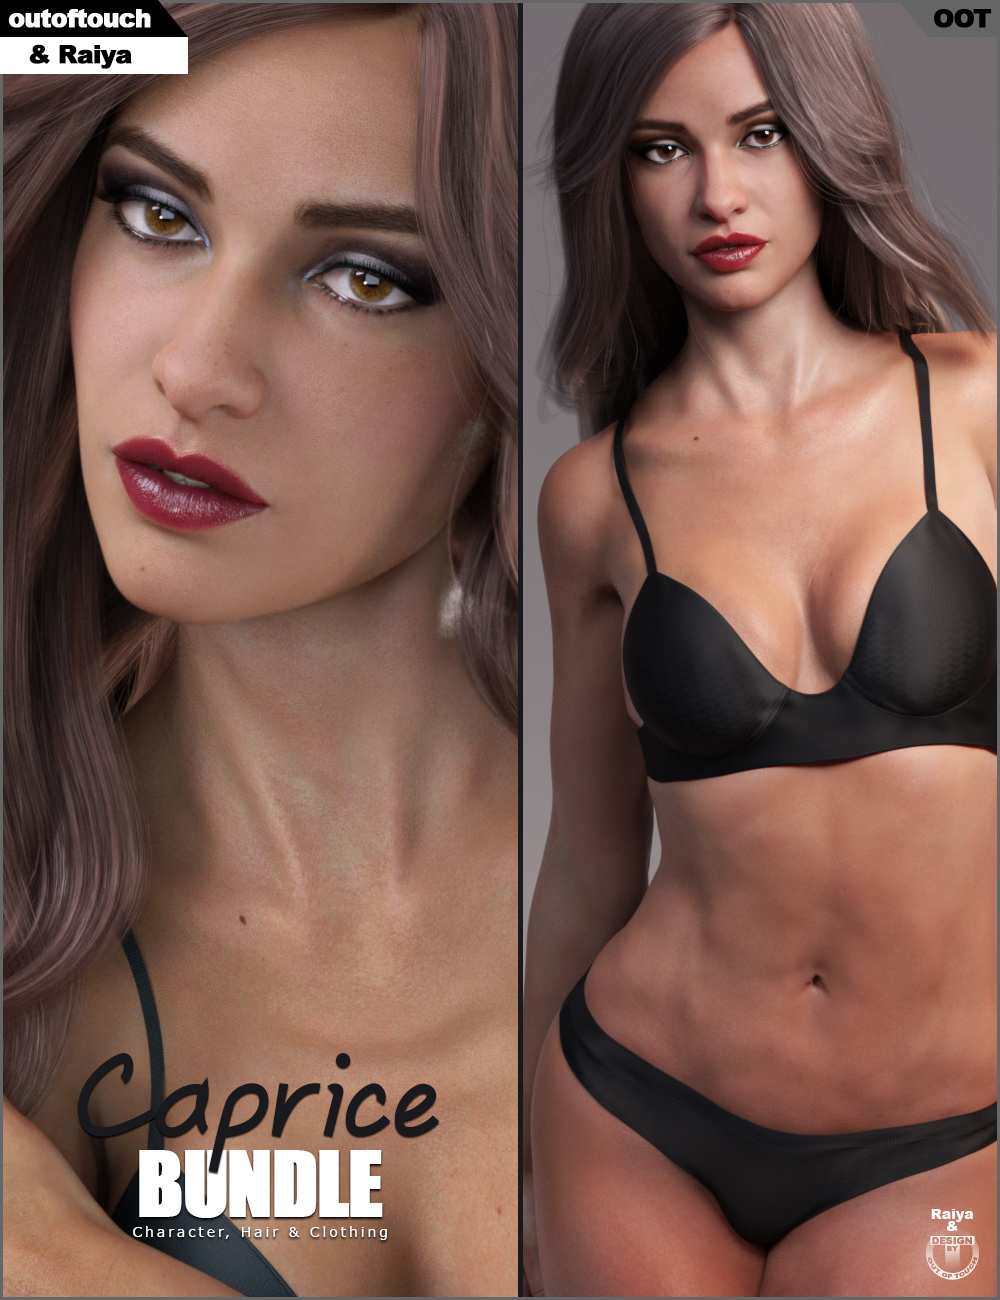 Caprice Character, Hair and Clothing Bundle by: Raiyaoutoftouch, 3D Models by Daz 3D